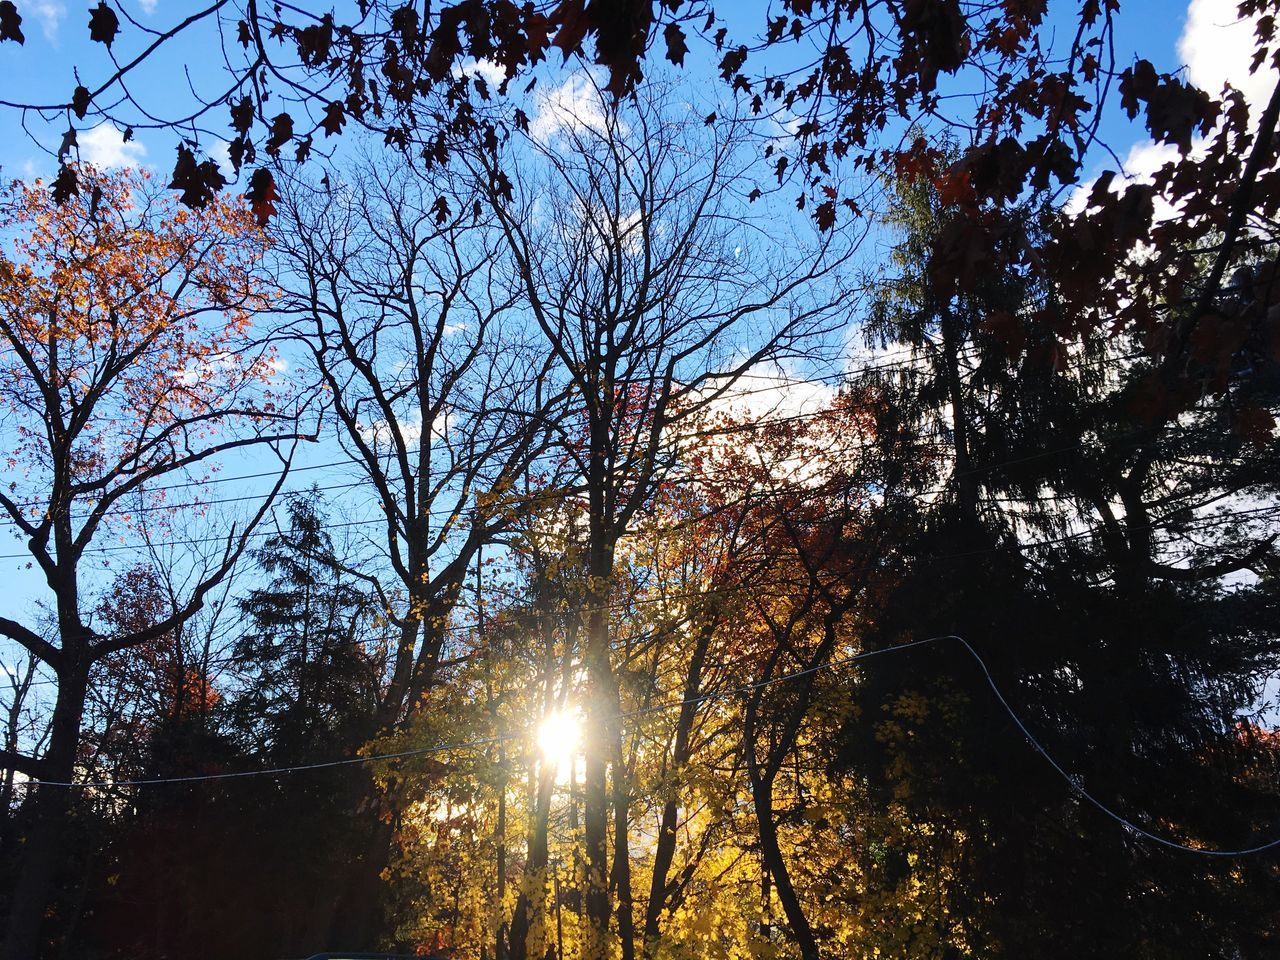 Tree Lens Flare Nature Sunlight Sky Branch Beauty In Nature Autumn Sunbeam Outdoors Bare Tree No People Growth Autumn Low Angle View Tranquility Scenics Day